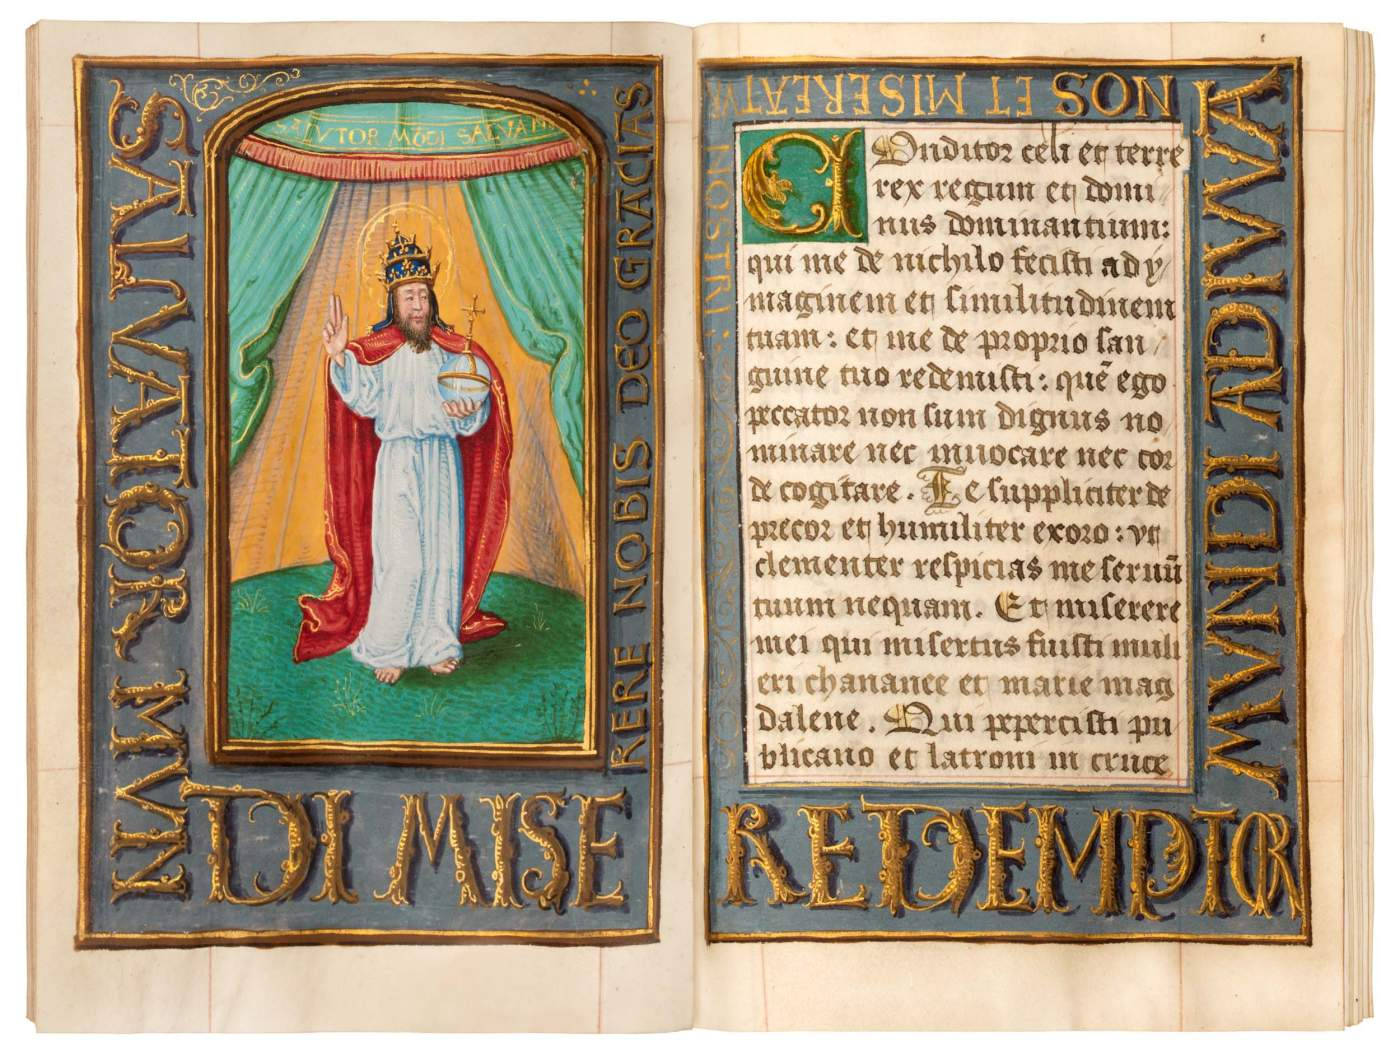 A Dazzling Treasure – A Book of Hours in the Ghent-Bruges Style